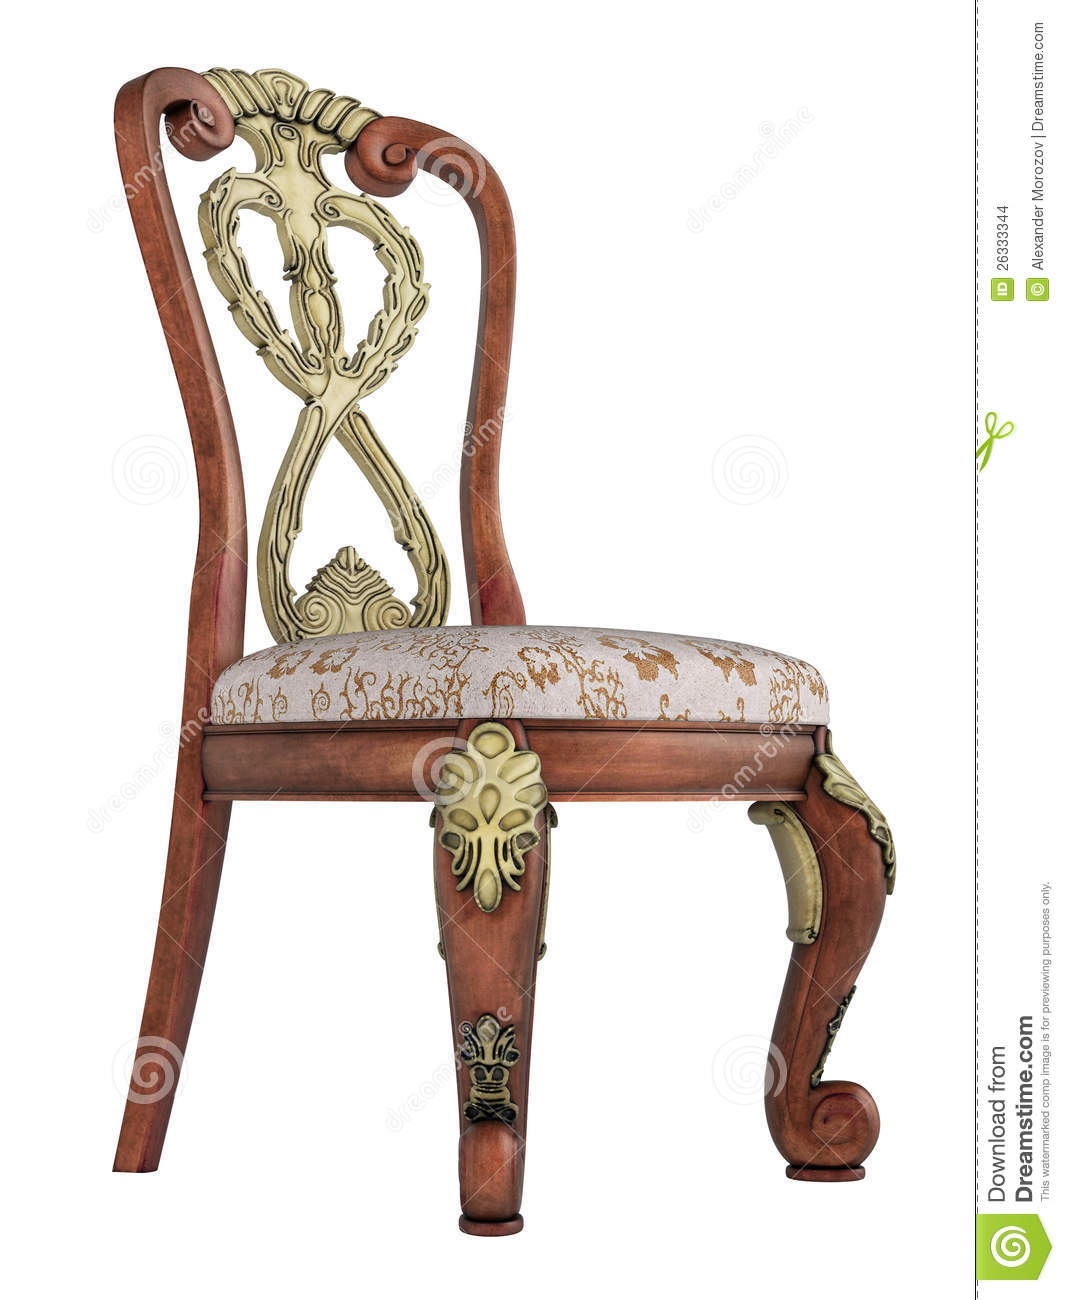 Superb img of More similar stock images of ` Antique wooden chair ` with #84A625 color and 1065x1300 pixels